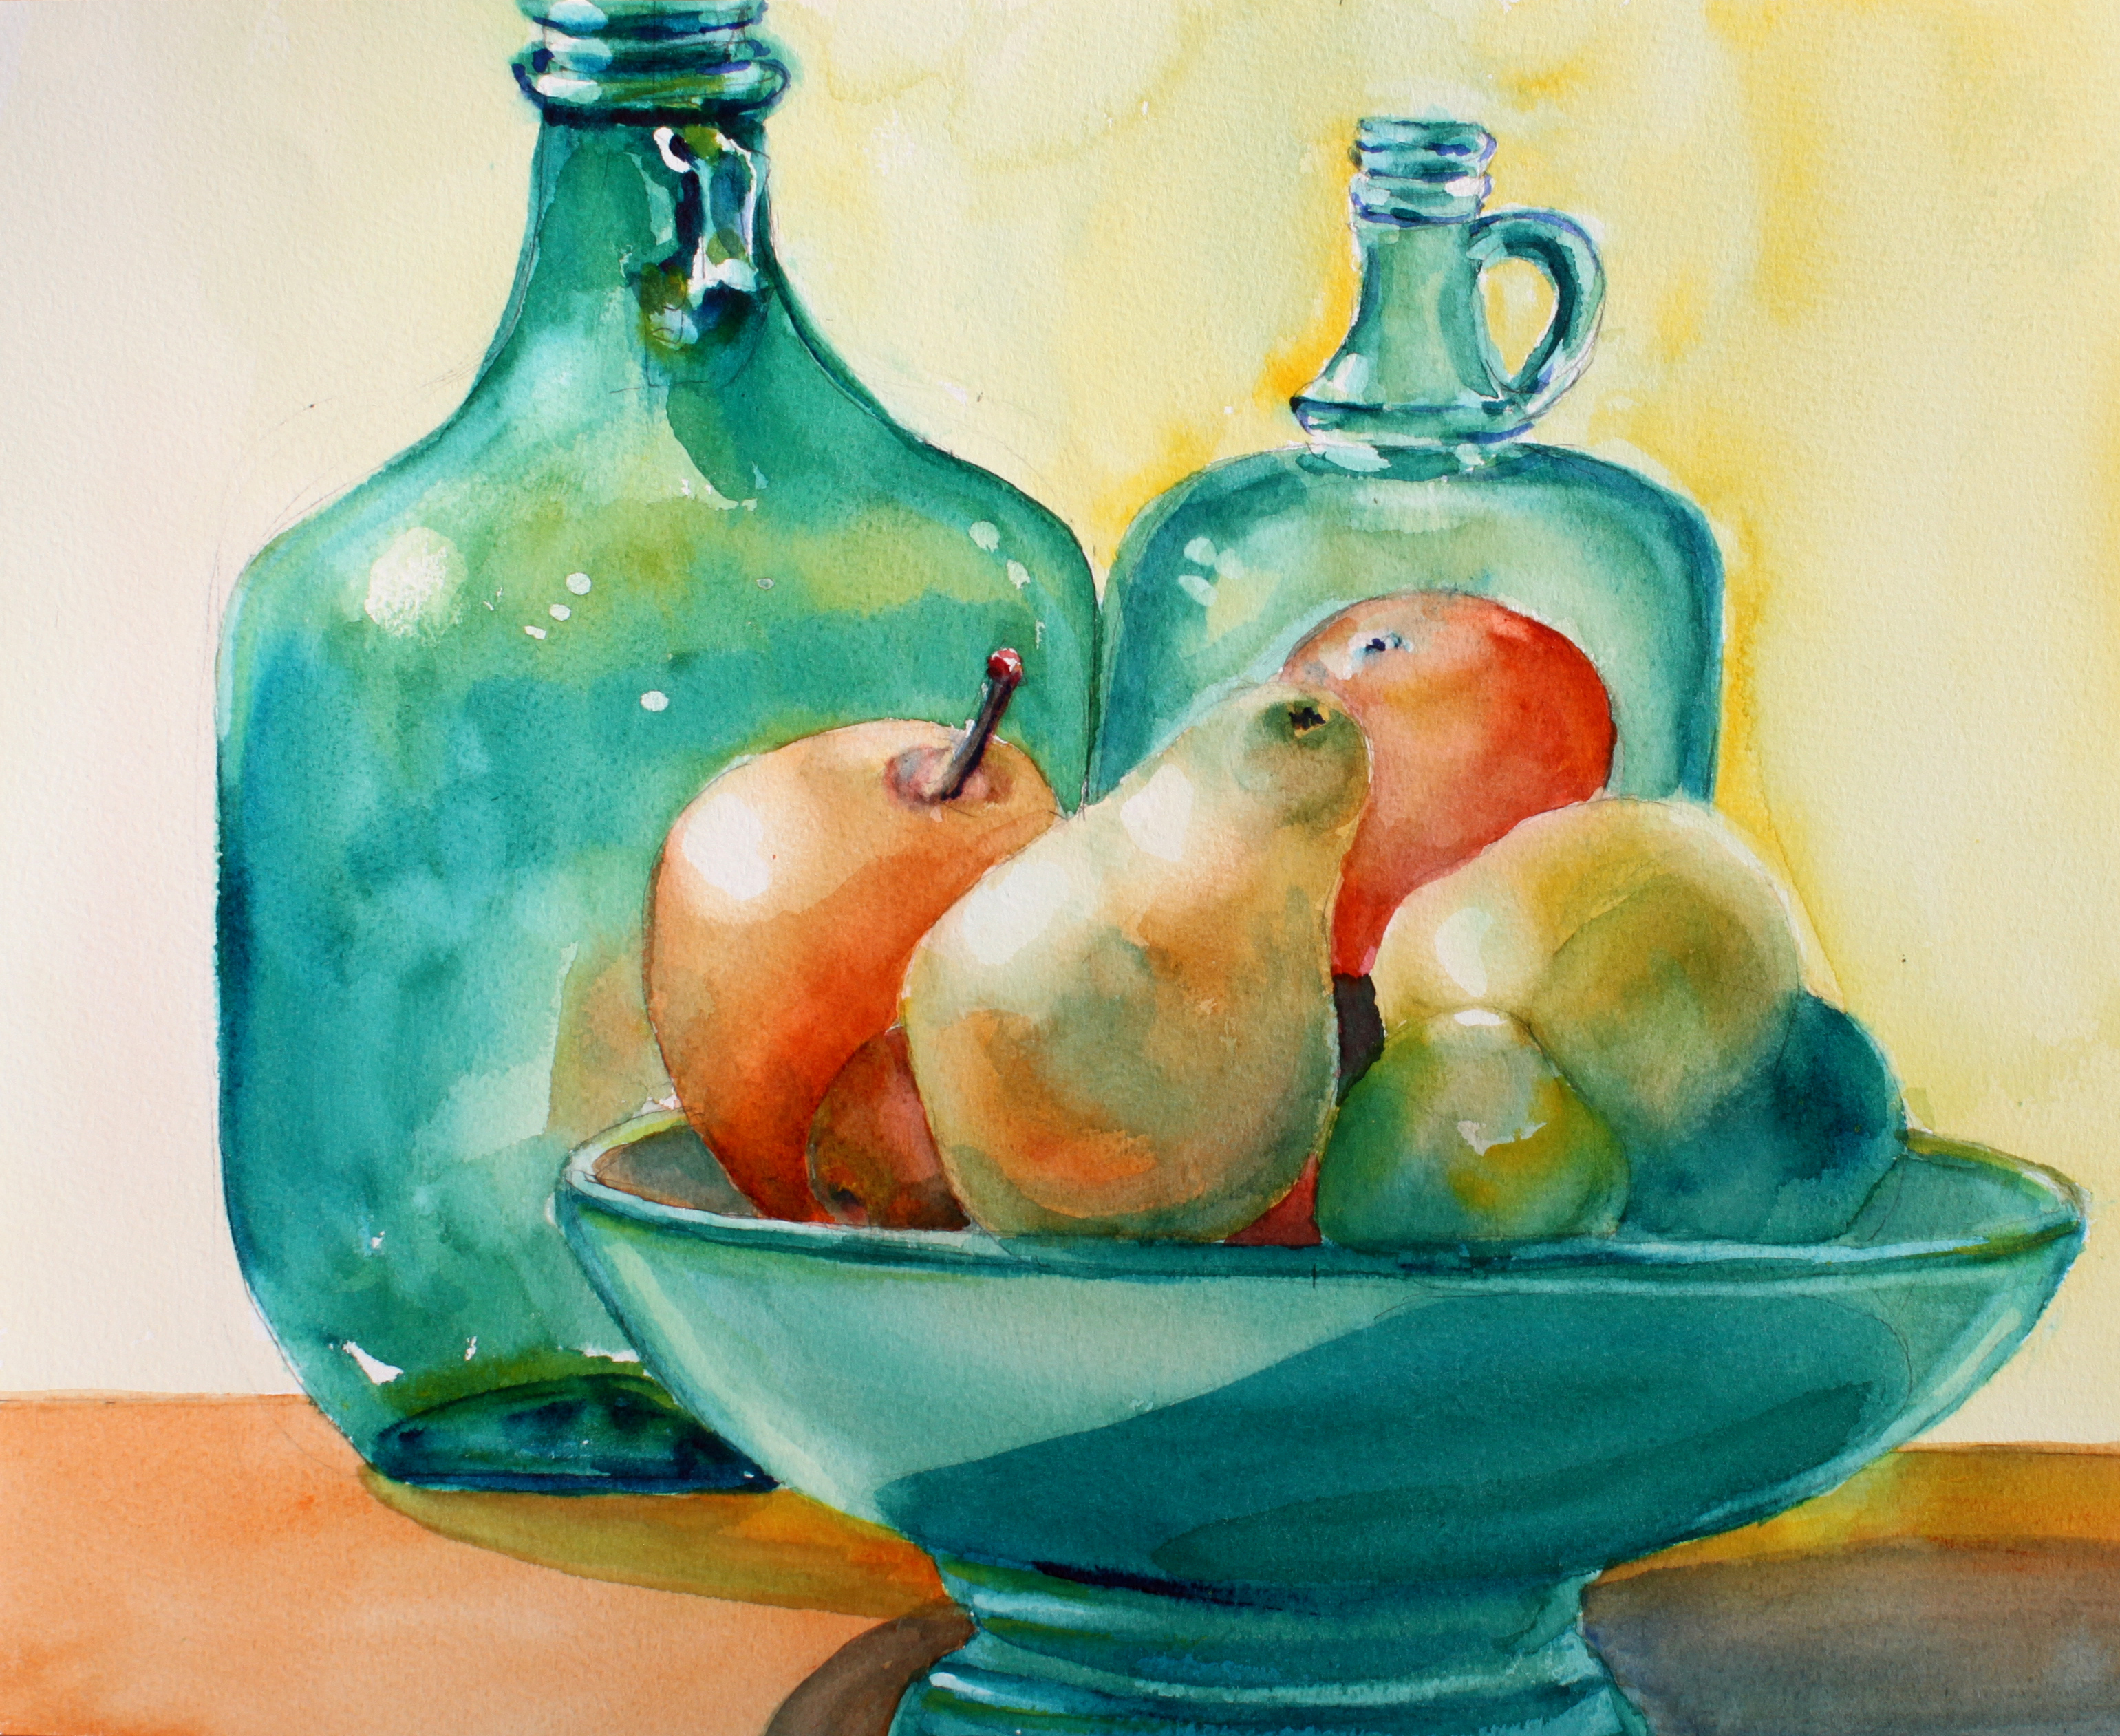 Still Life With Glass Bottles And Fruit Bowl Hobby Sketcher